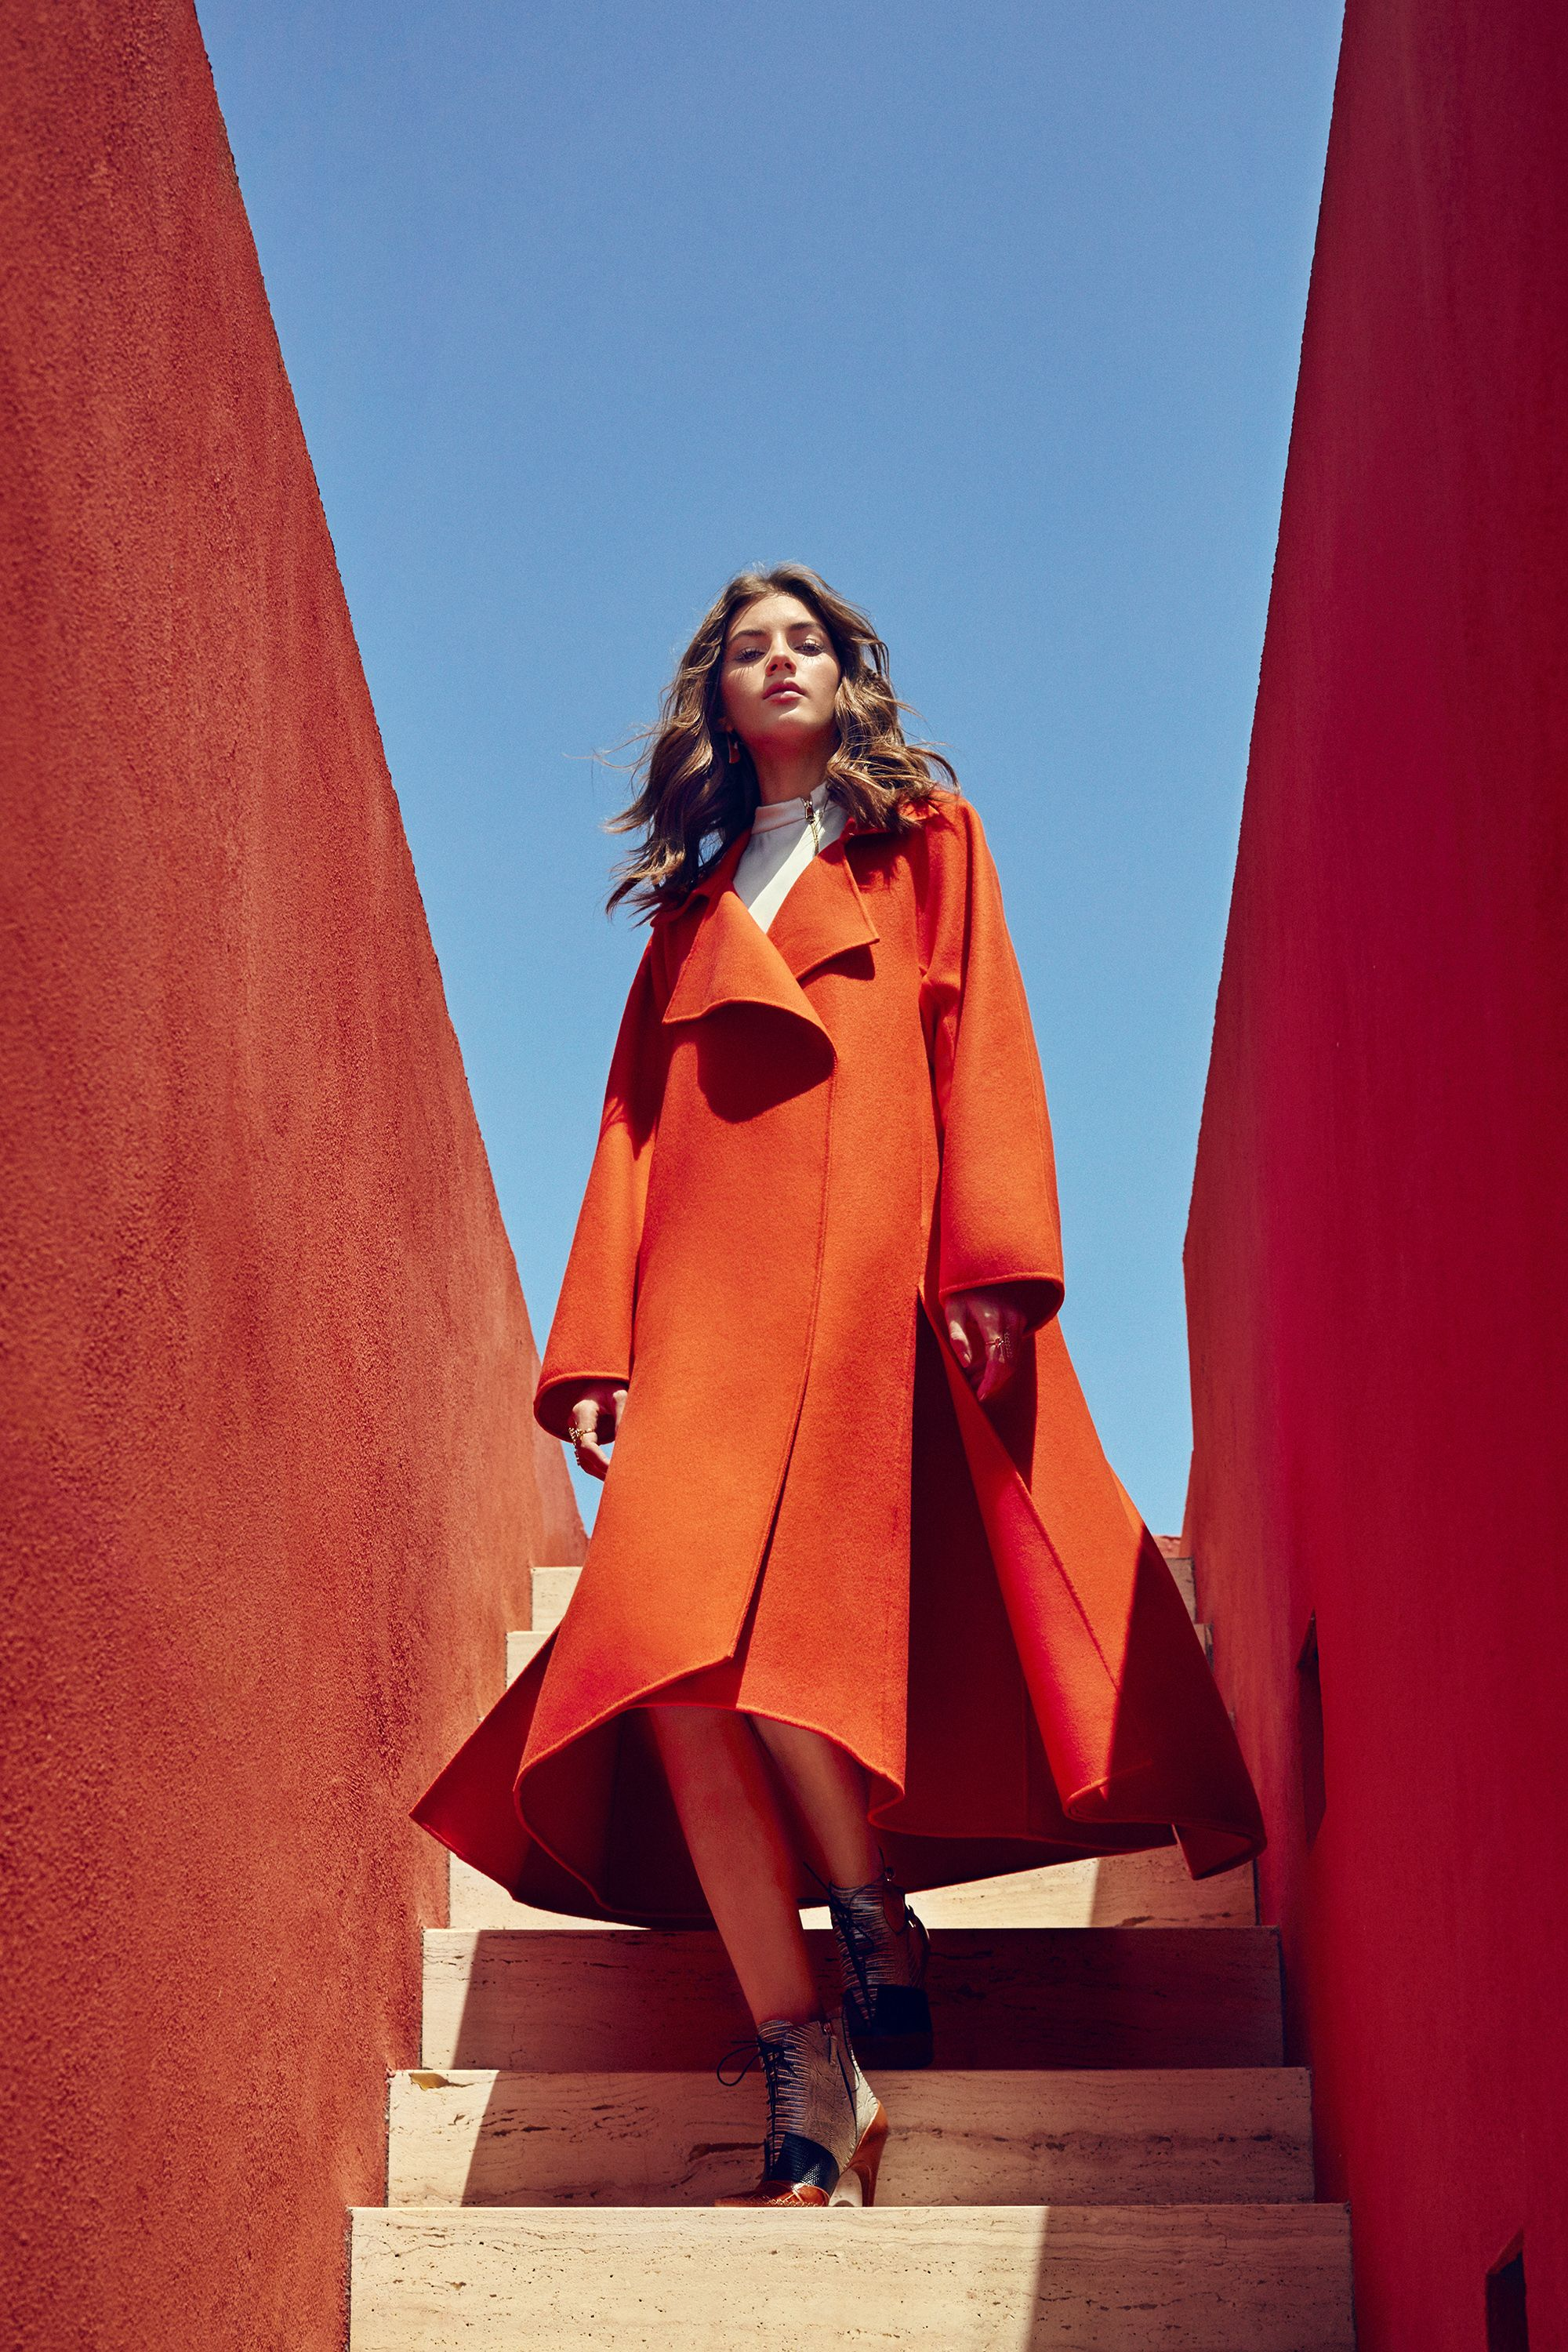 """<p><strong data-redactor-tag=""""strong"""" data-verified=""""redactor"""">Dior </strong>coat, $12,500, top, price upon request,and boots, $1,500, 800-929-DIOR; <strong data-redactor-tag=""""strong"""" data-verified=""""redactor"""">Maiyet </strong>earrings, $385, maiyet.com;<strong data-redactor-tag=""""strong"""" data-verified=""""redactor"""">Delfina Delettrez </strong>rings, $911-$1,117, <a href=""""http://www.farfetch.com/uk/shopping/women/items.aspx"""" target=""""_blank"""">farfetch.com</a>.<span class=""""redactor-invisible-space"""" data-verified=""""redactor"""" data-redactor-tag=""""span"""" data-redactor-class=""""redactor-invisible-space""""></span></p>"""